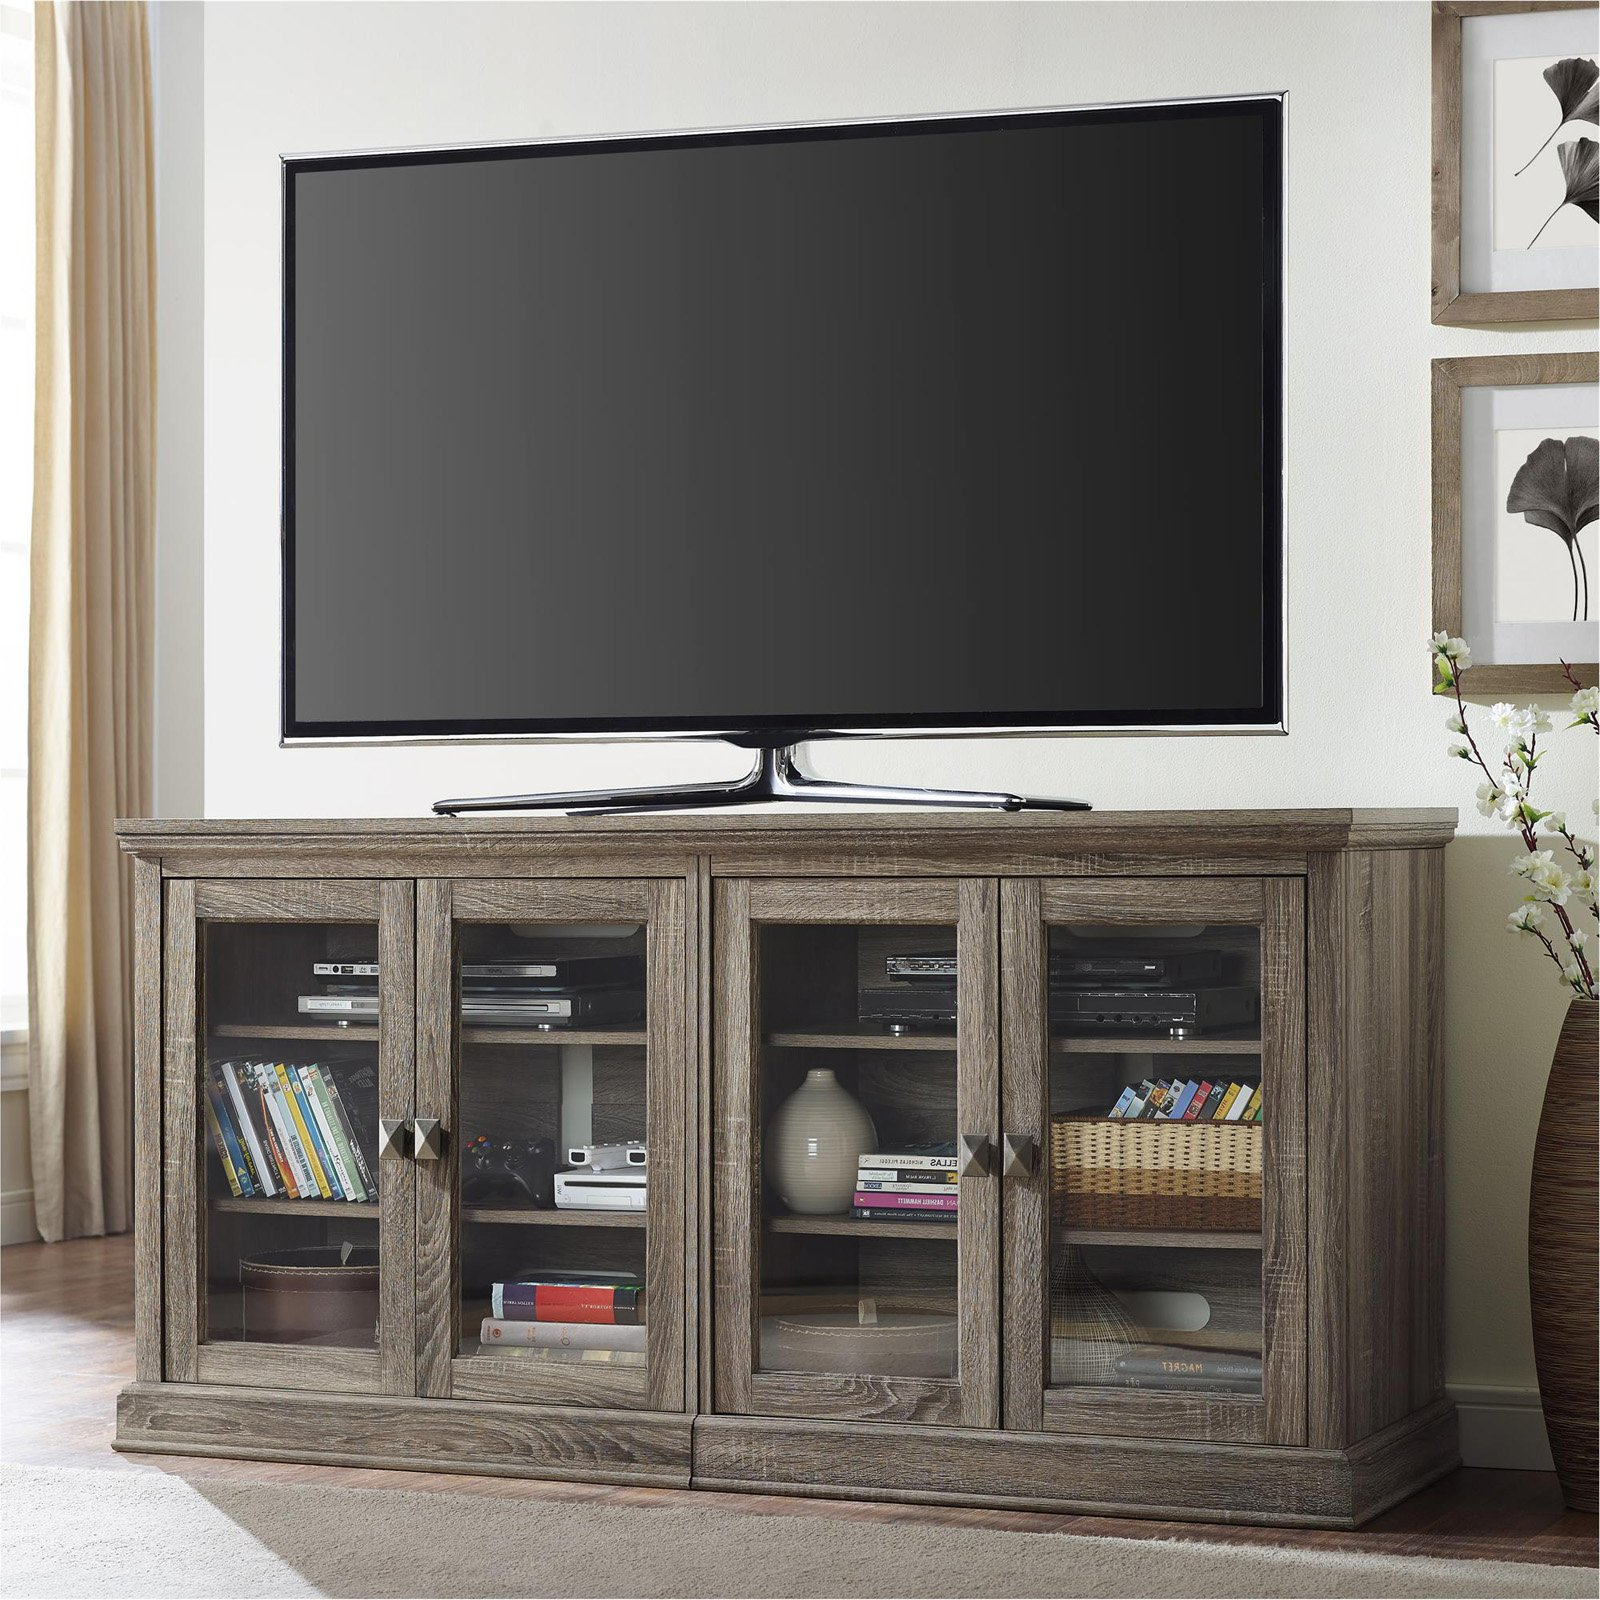 Ameriwood Home Bennett Tv Stand With Glass Doors For Tvs Up To 70 In Trendy Oak Tv Stands With Glass Doors (Gallery 5 of 20)